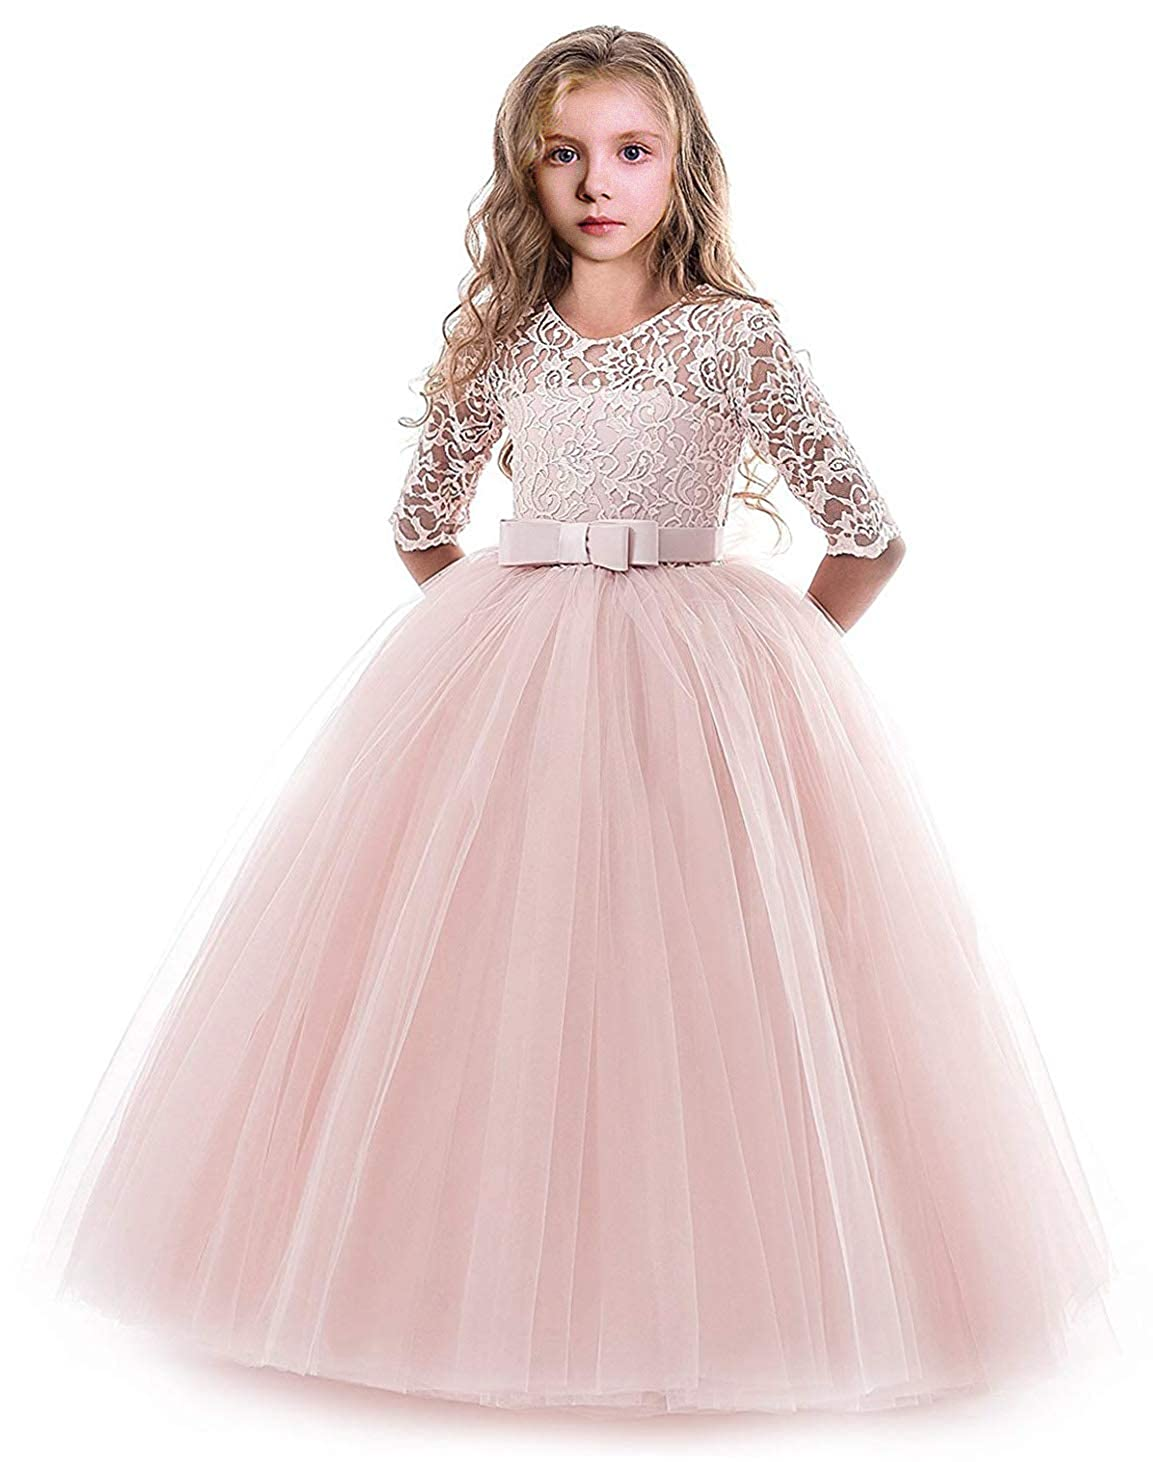 Devoted Long Little Bride Pageant Holiday Dress For Girls Corset Kids Graduation Ball Gown Puffy Tulle Dress Prom Flower Girl Dress Pretty And Colorful Flower Girl Dresses